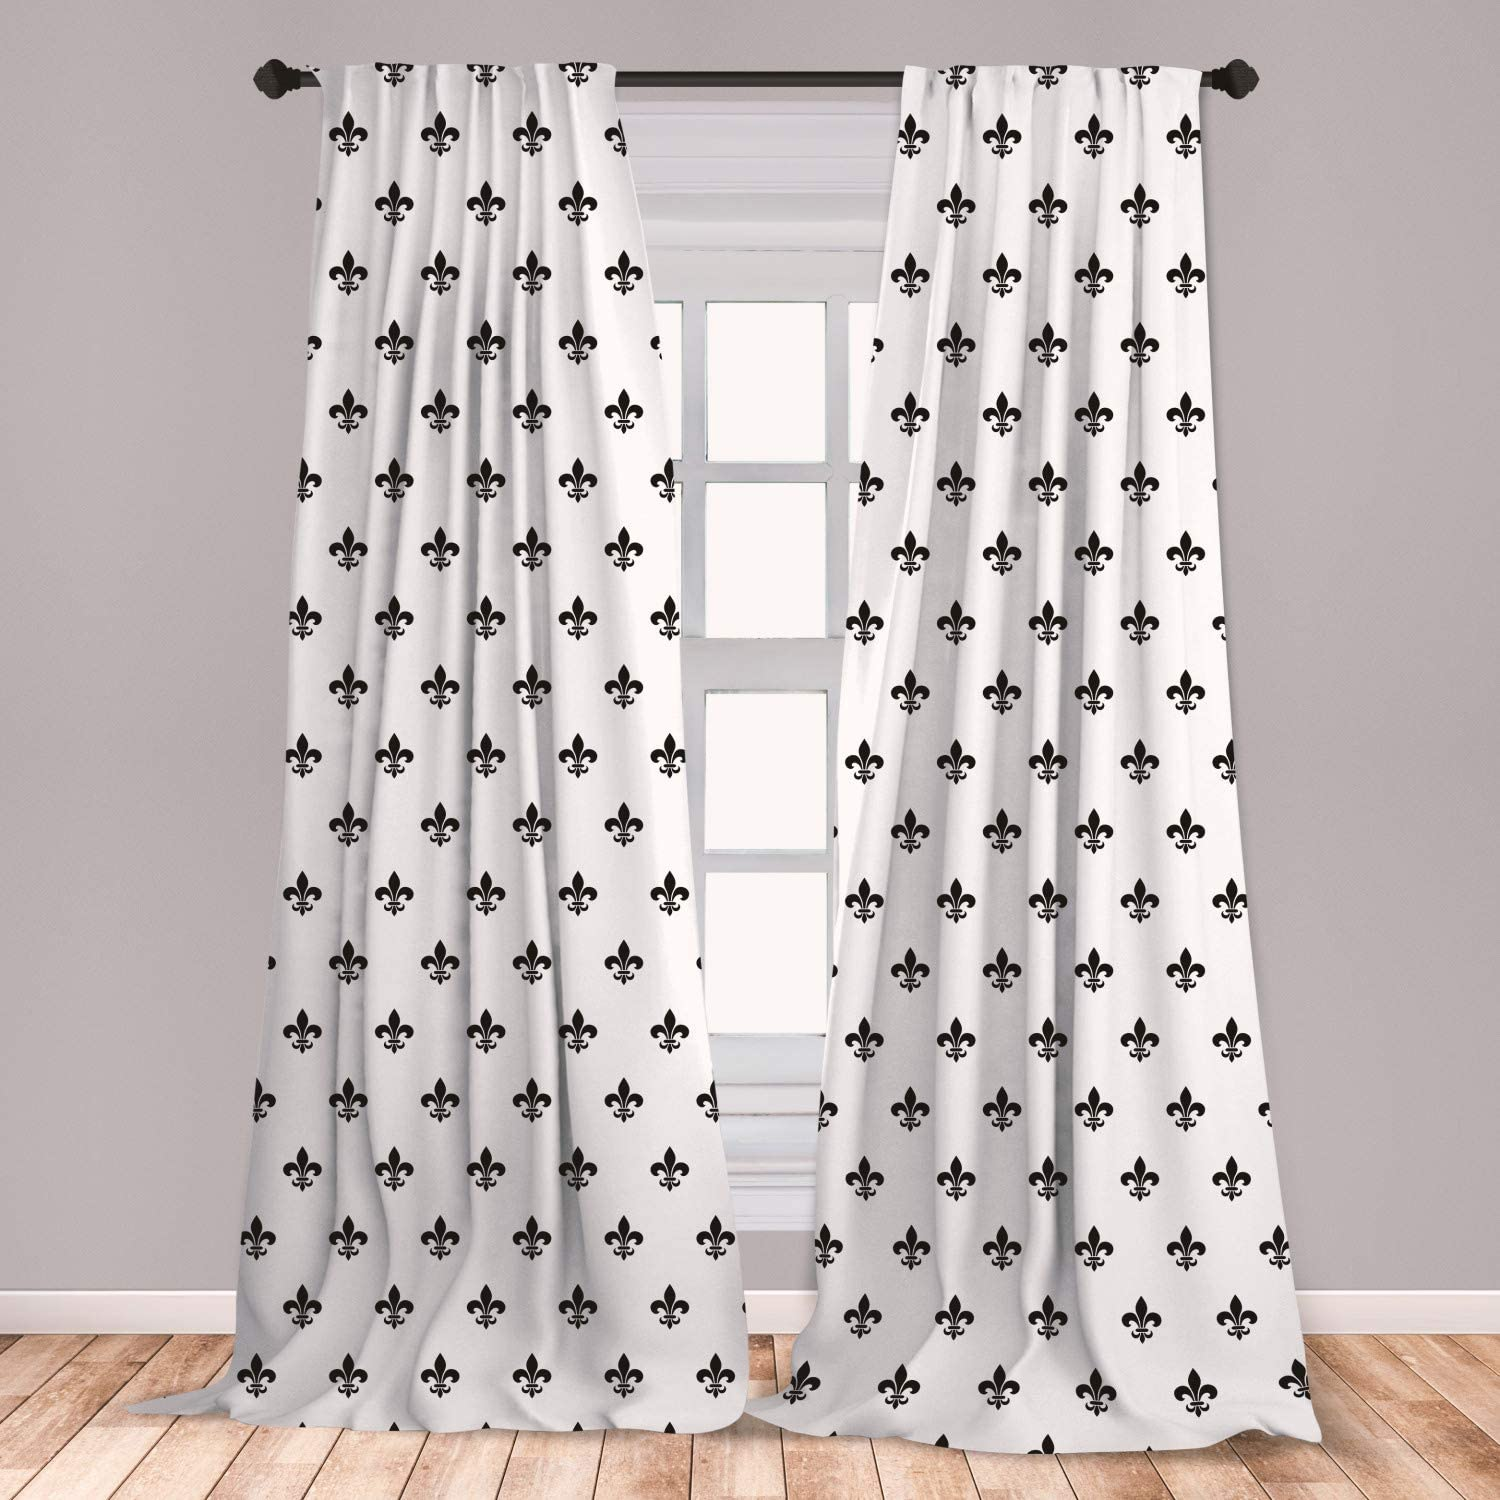 Ambesonne Fleur De Lis 2 Panel Curtain Set, Pointed Leaves with Monochrome Design Abstract Classical Ornamental Pattern, Lightweight Window Treatment Living Room Bedroom Decor, 56